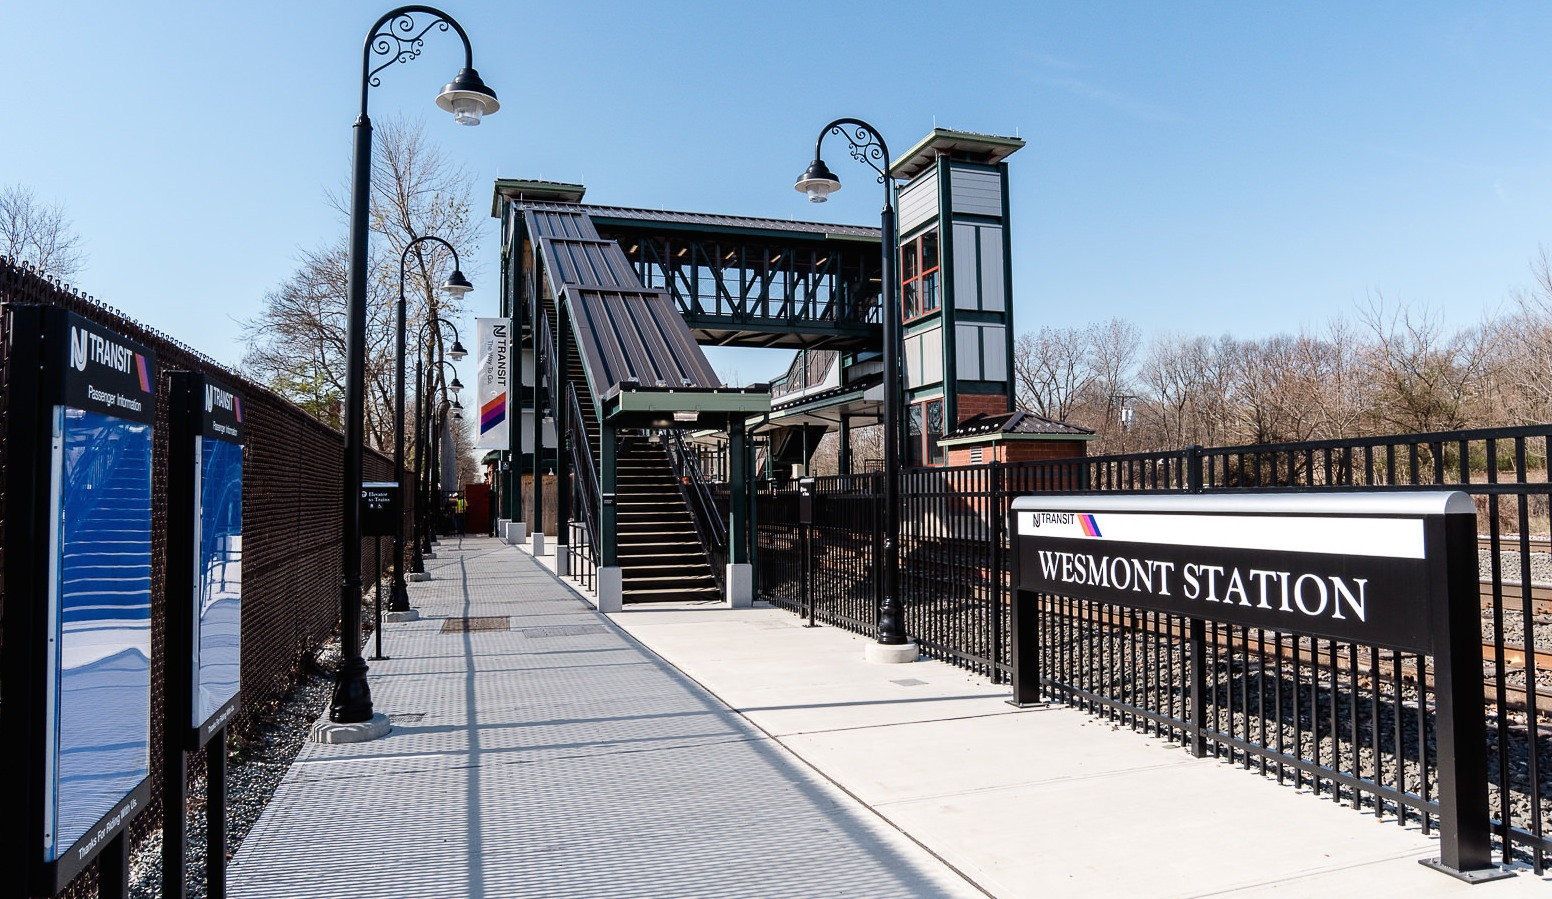 New NJ Transit train stop at Wesmont Station located in Woodridge, NJ